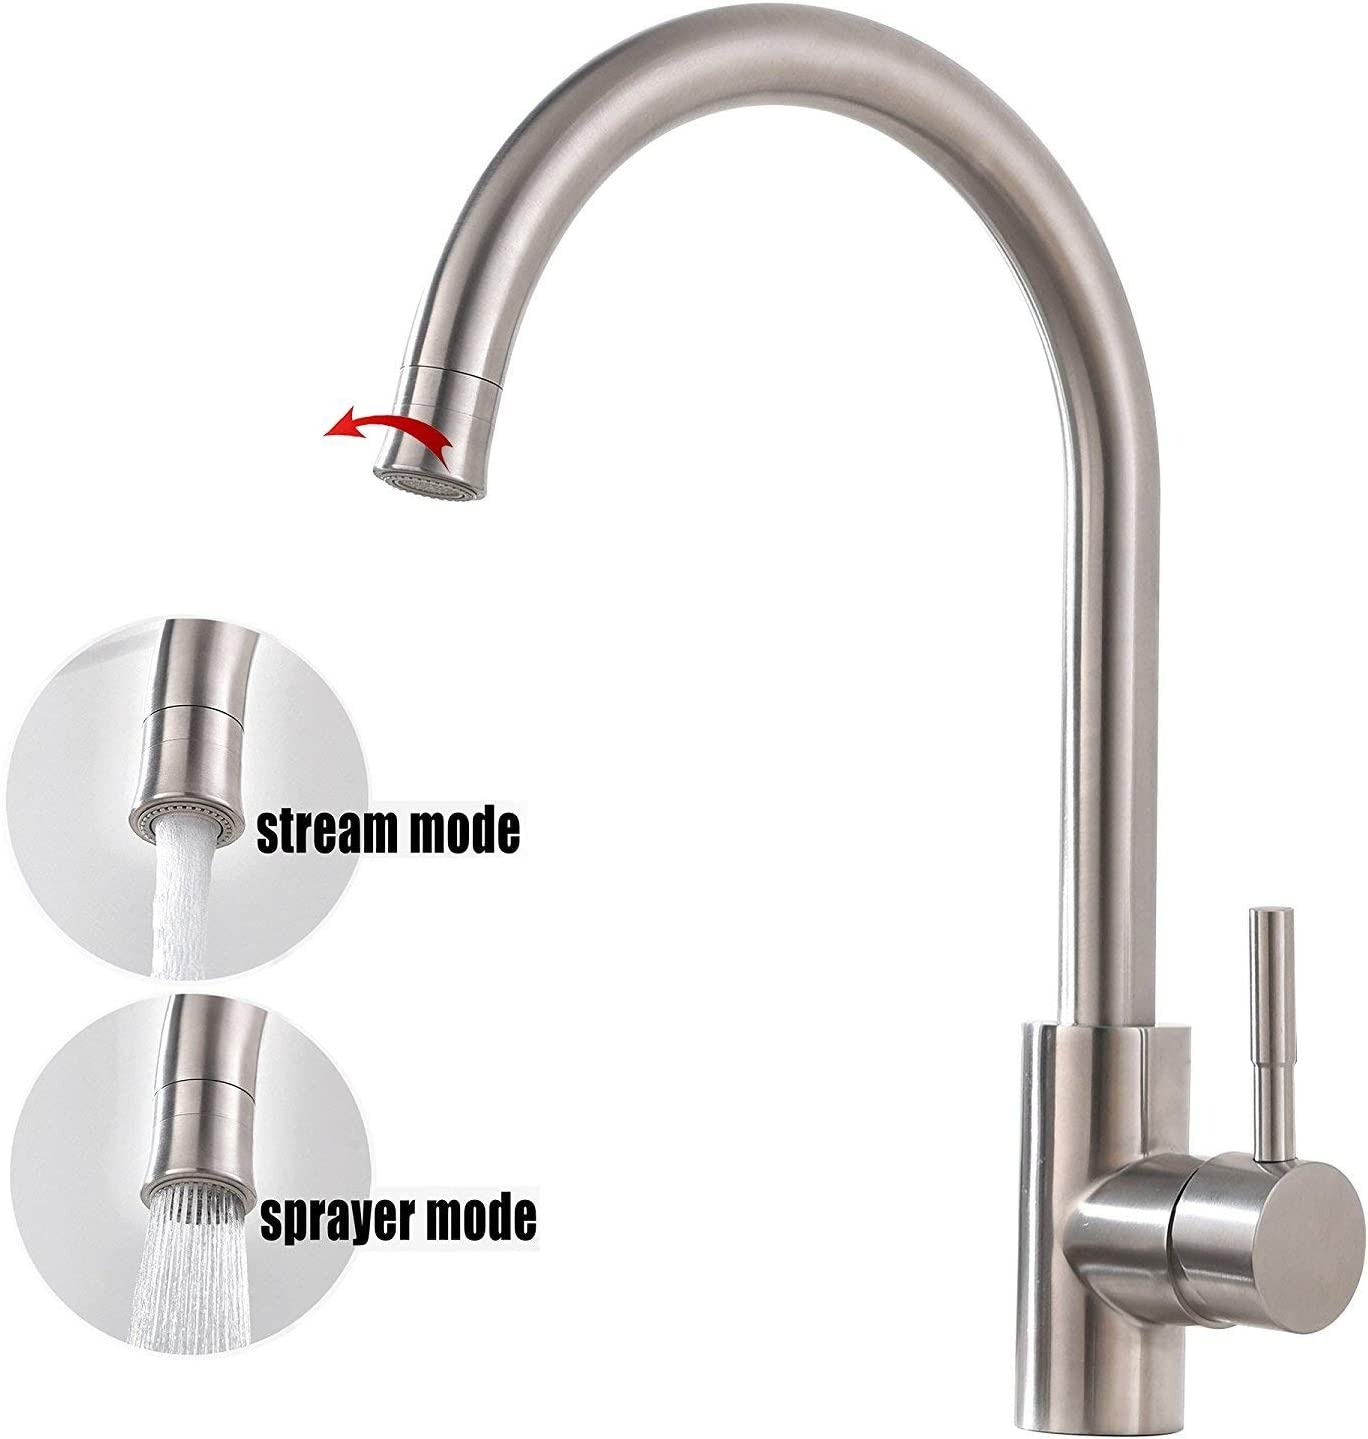 Bokaiya Kitchen Faucet, Commercial Gooseneck Stainless Steel Brushed Nickel One Hole Kitchen Faucet, Kitchen Bar Sink Faucet